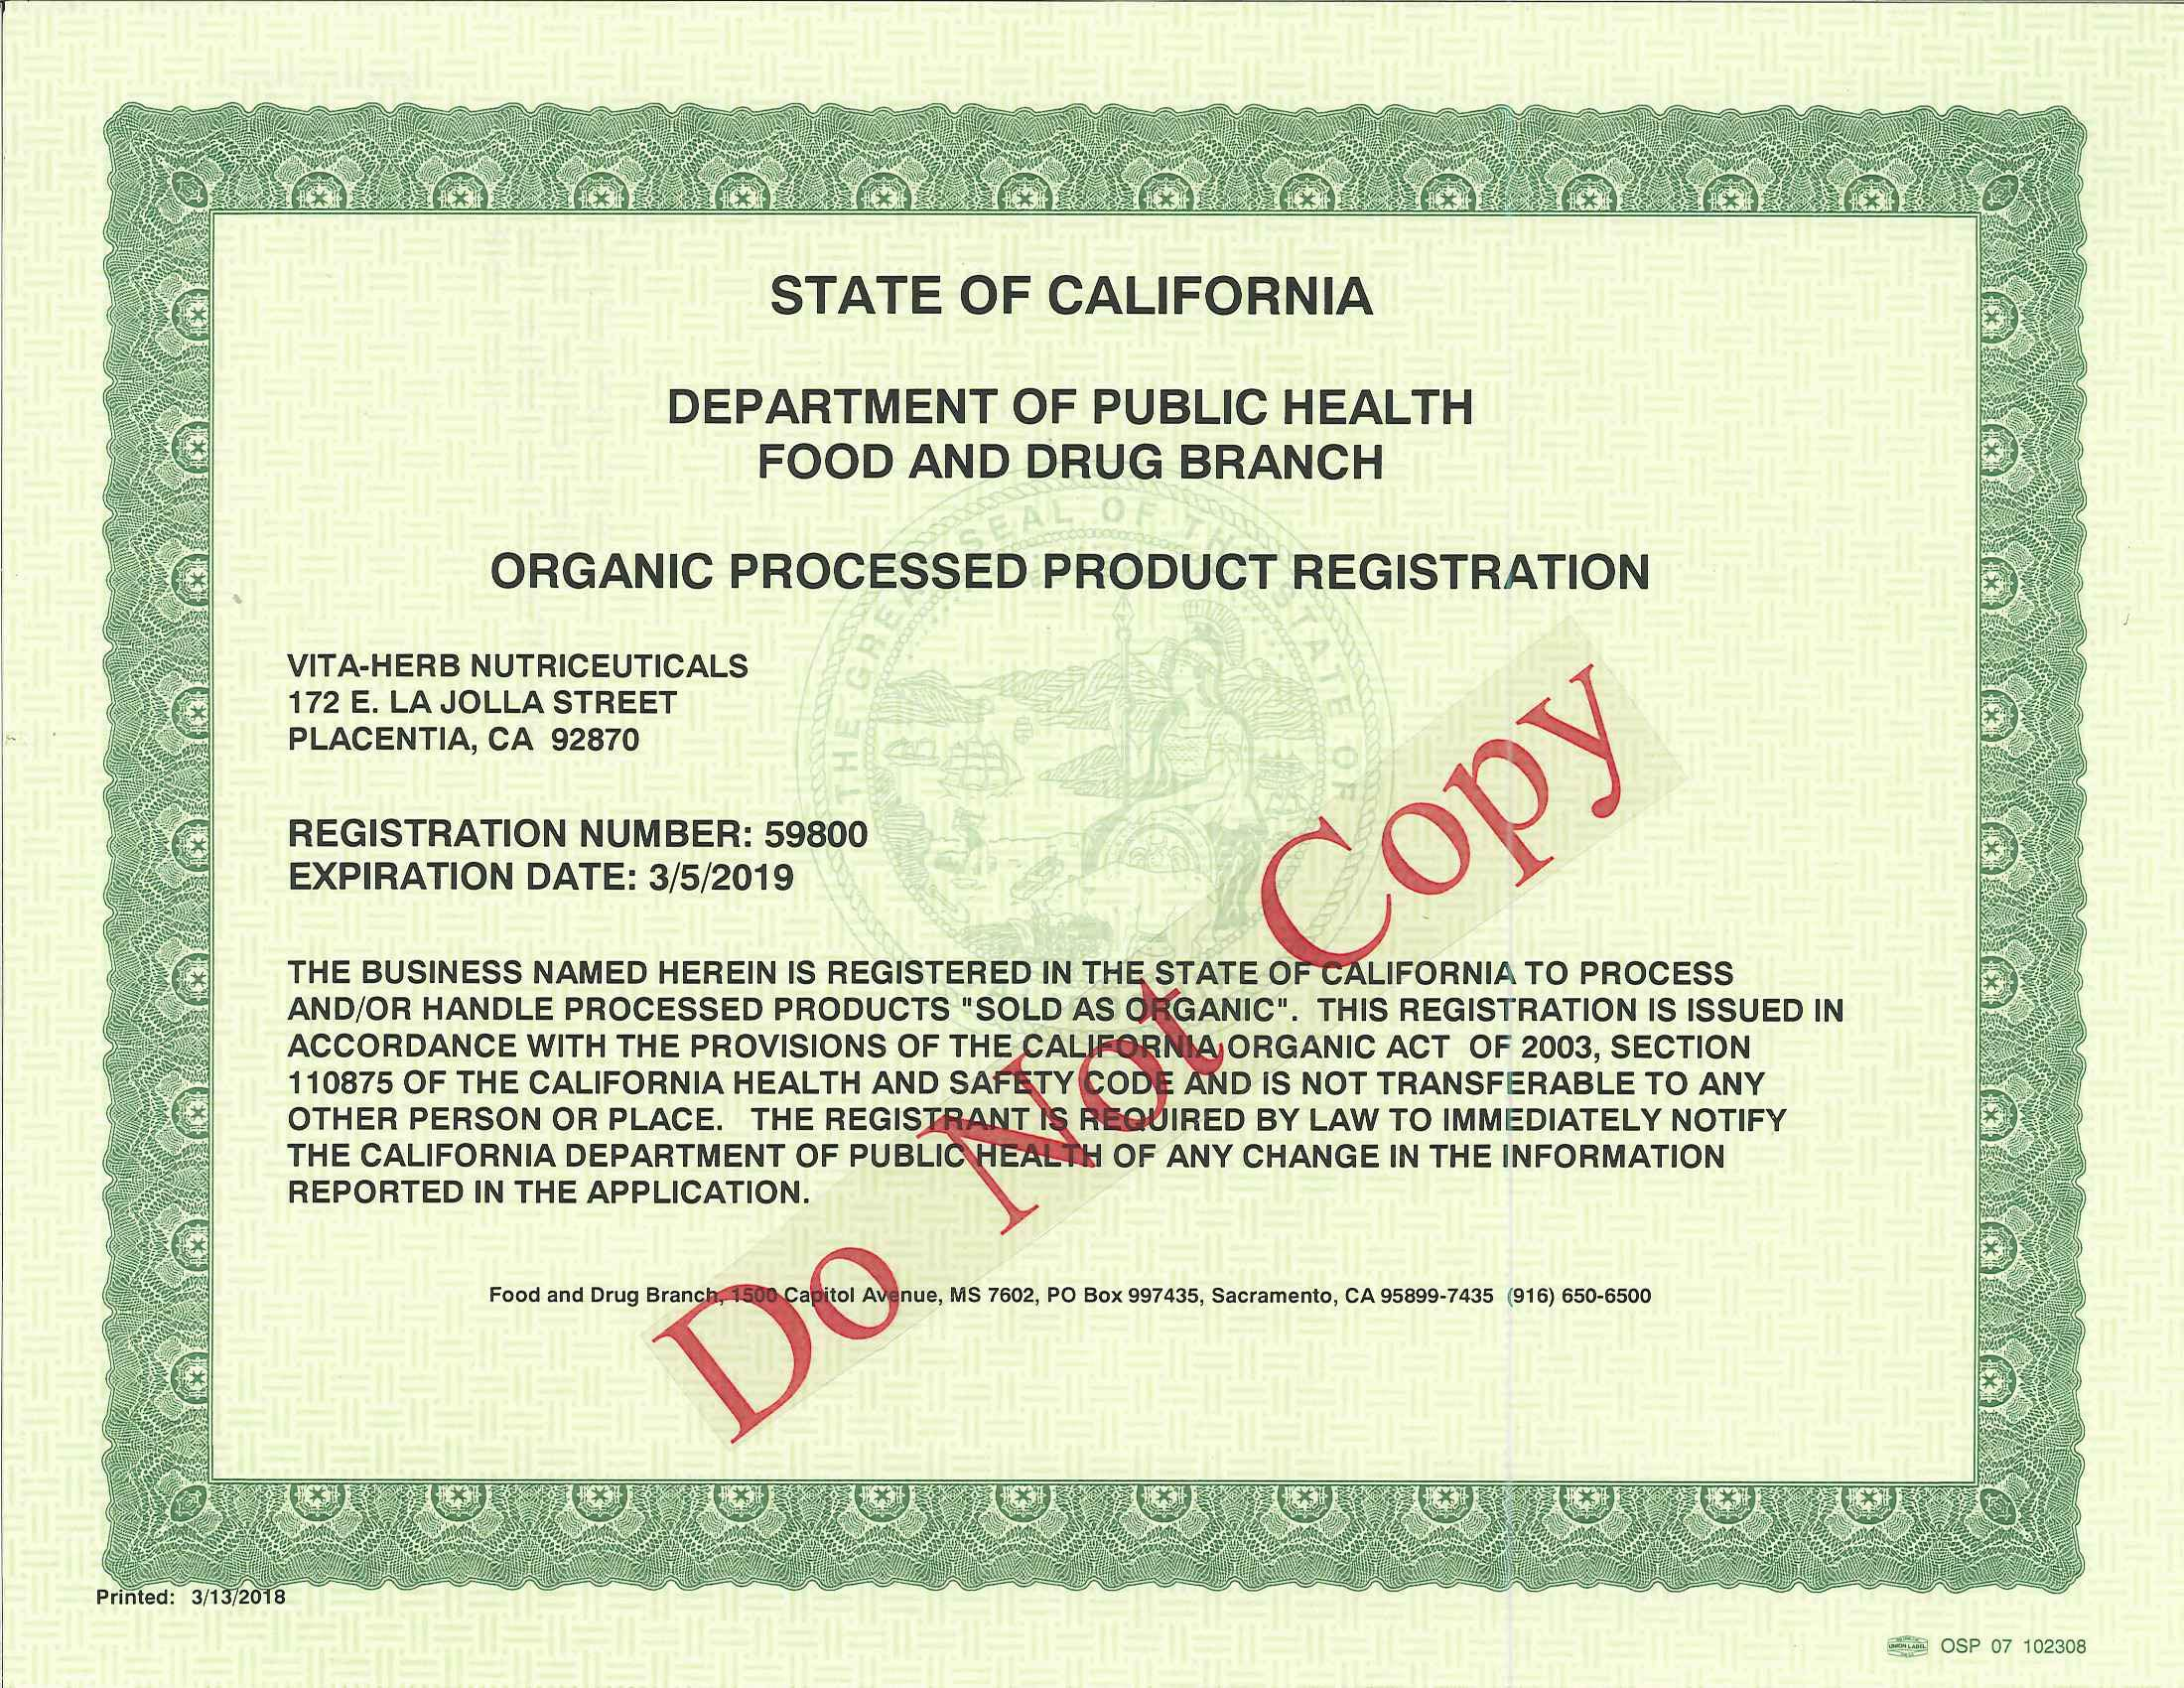 Stomach Acid Protected & Super-Absorption Cycloastragenol 99%, Made in USA, 10mg, 90caps by Nature's Bliss (Image #7)